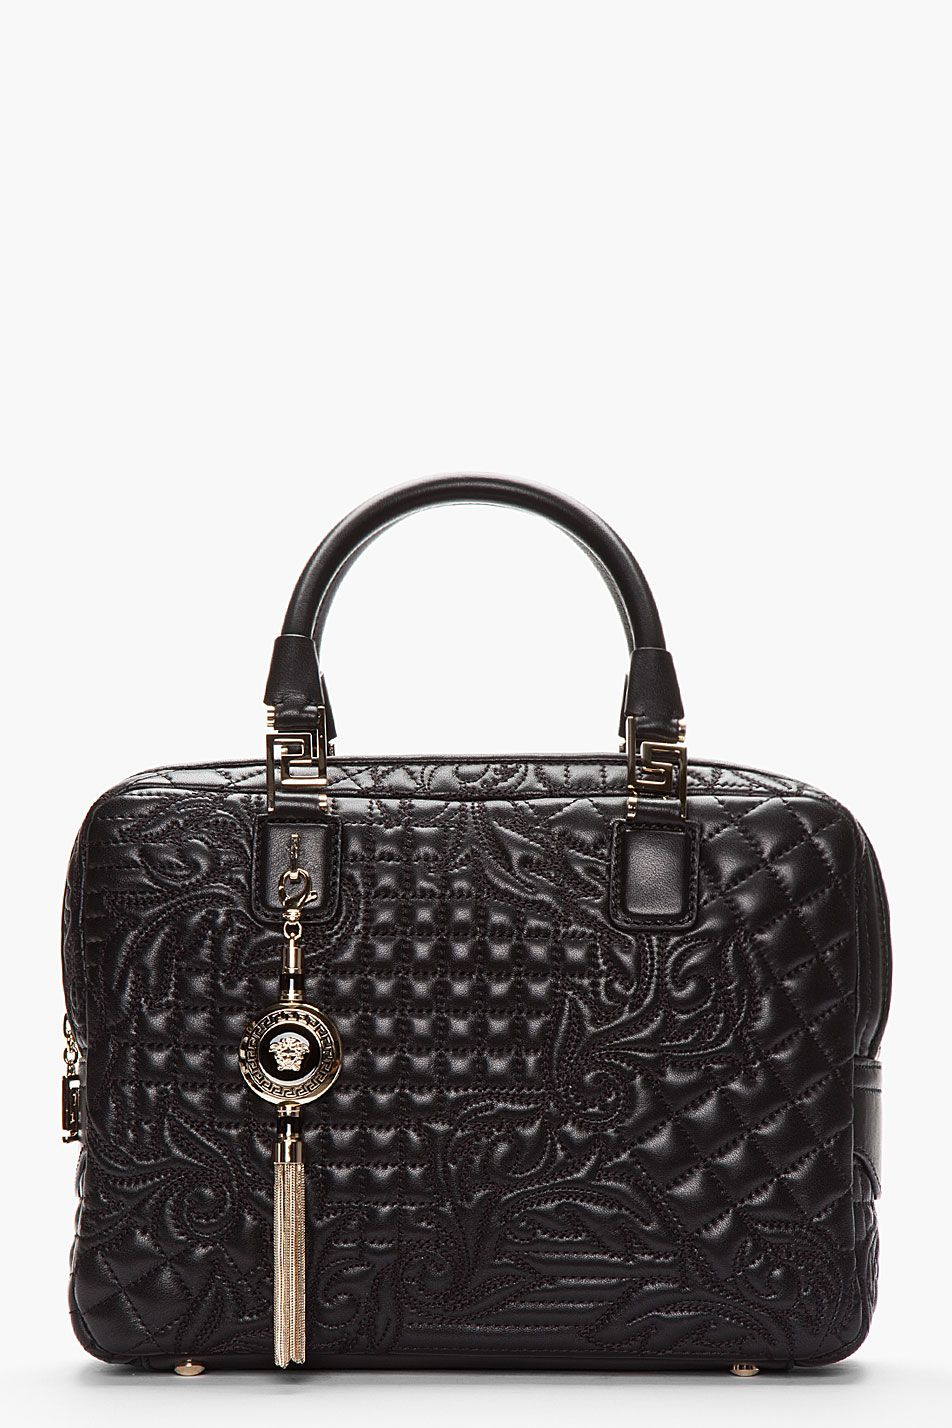 Leather quilted handbags and purses - Versace Black Quilted Floral Leather Tassel Bag For Women Ssense